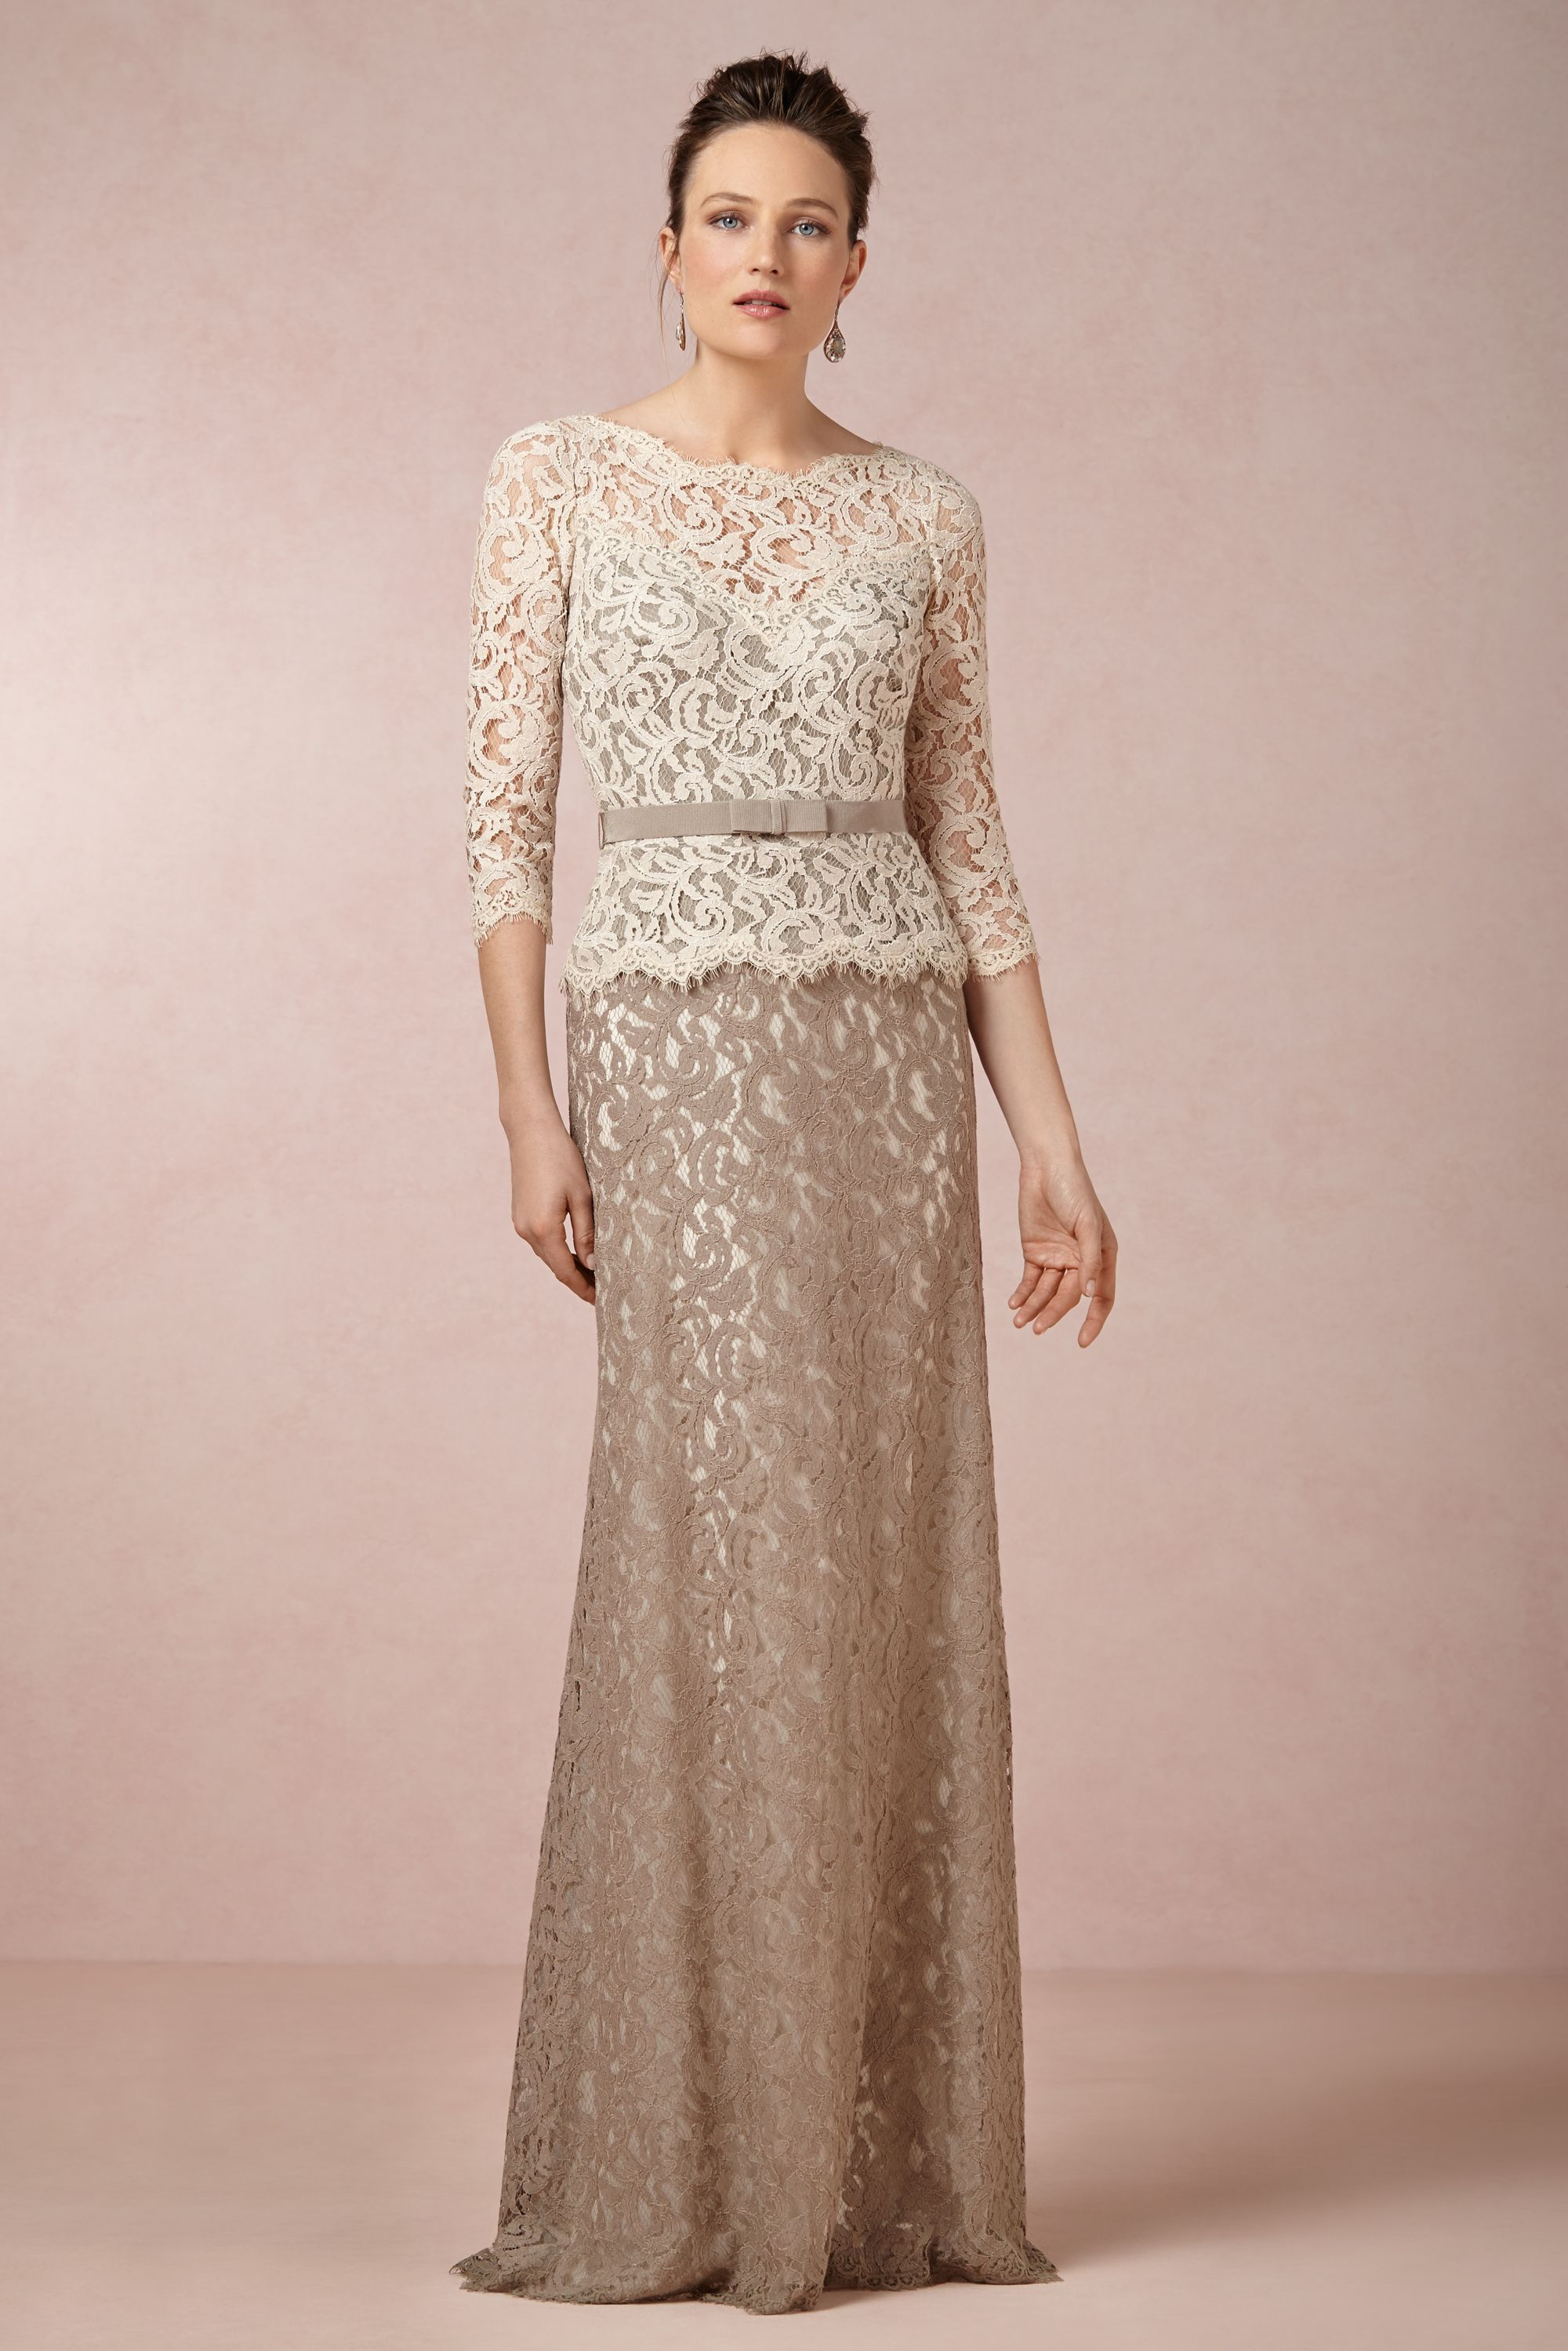 Mabel Dress from @BHLDN